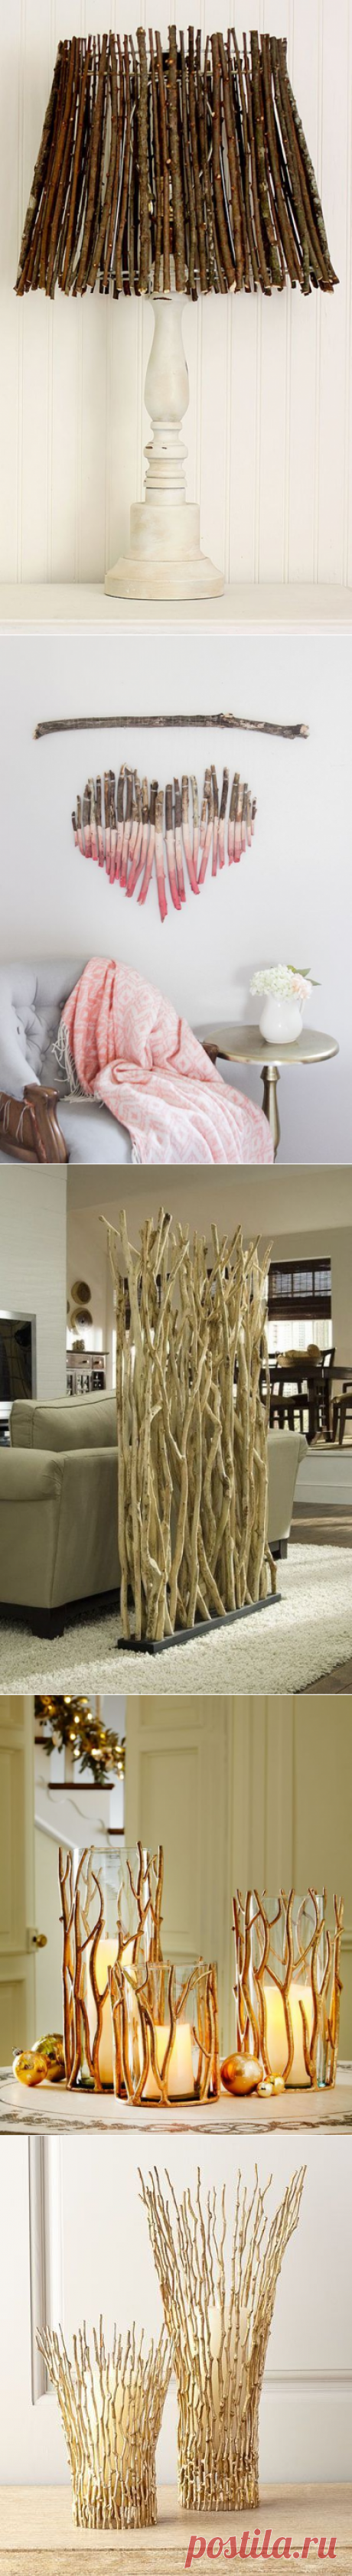 Amazing DIY crafts from branches for any occasion | My desired home